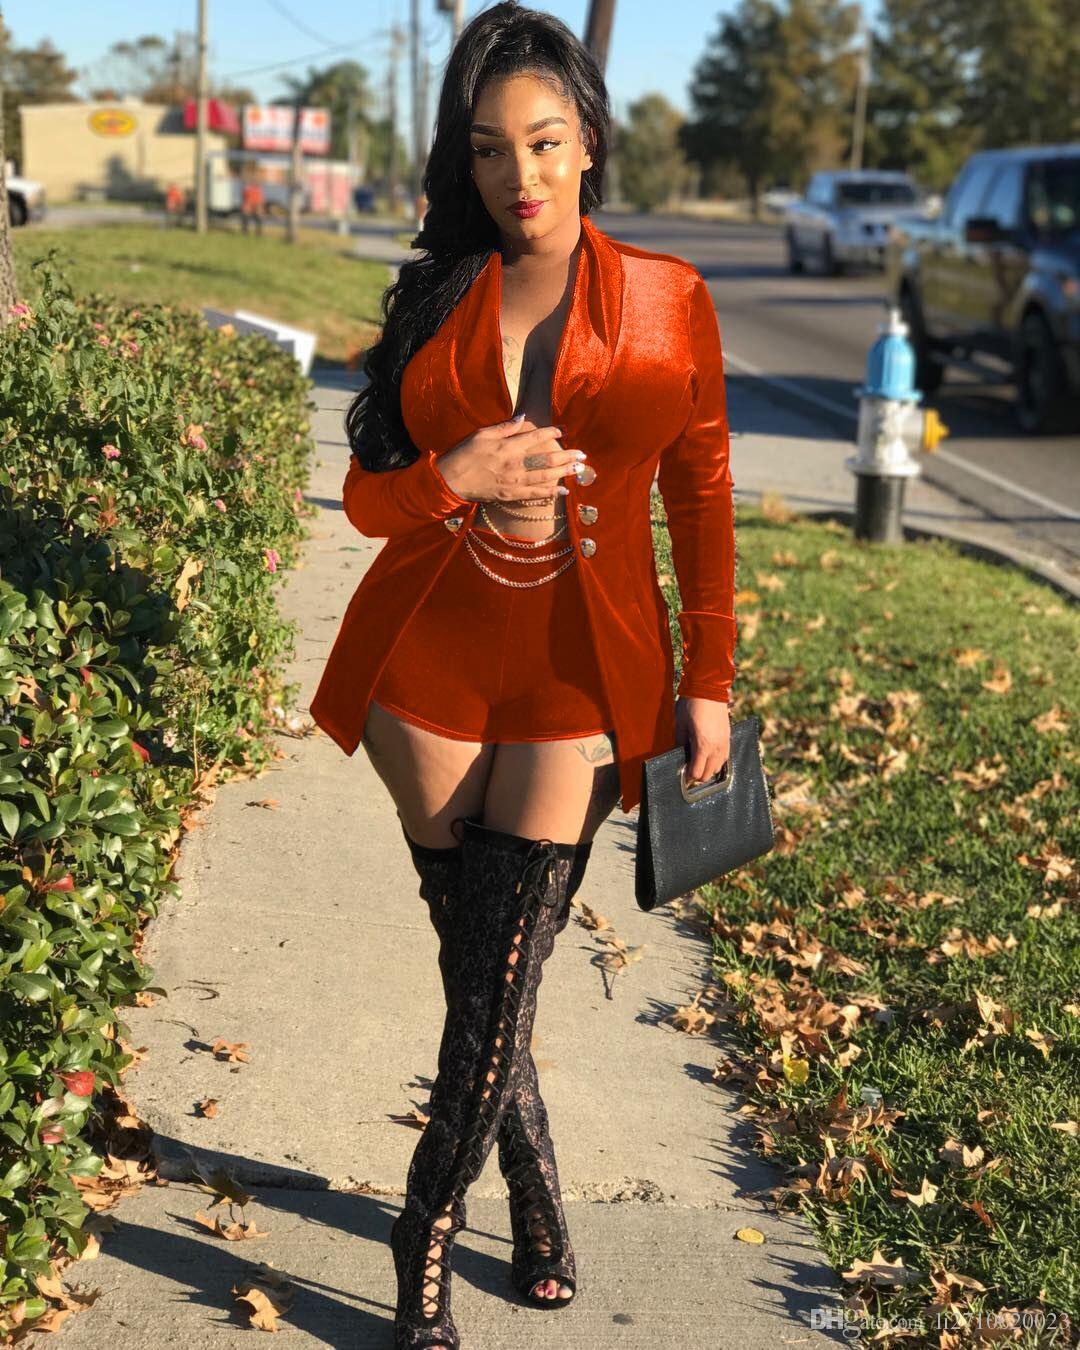 Velvet Suit Tracksuits Women Long Sleeve Chain Button Long Jacket Tops and Short Sexy Party Outfit Fashion Two Piece Set Ladies Suit